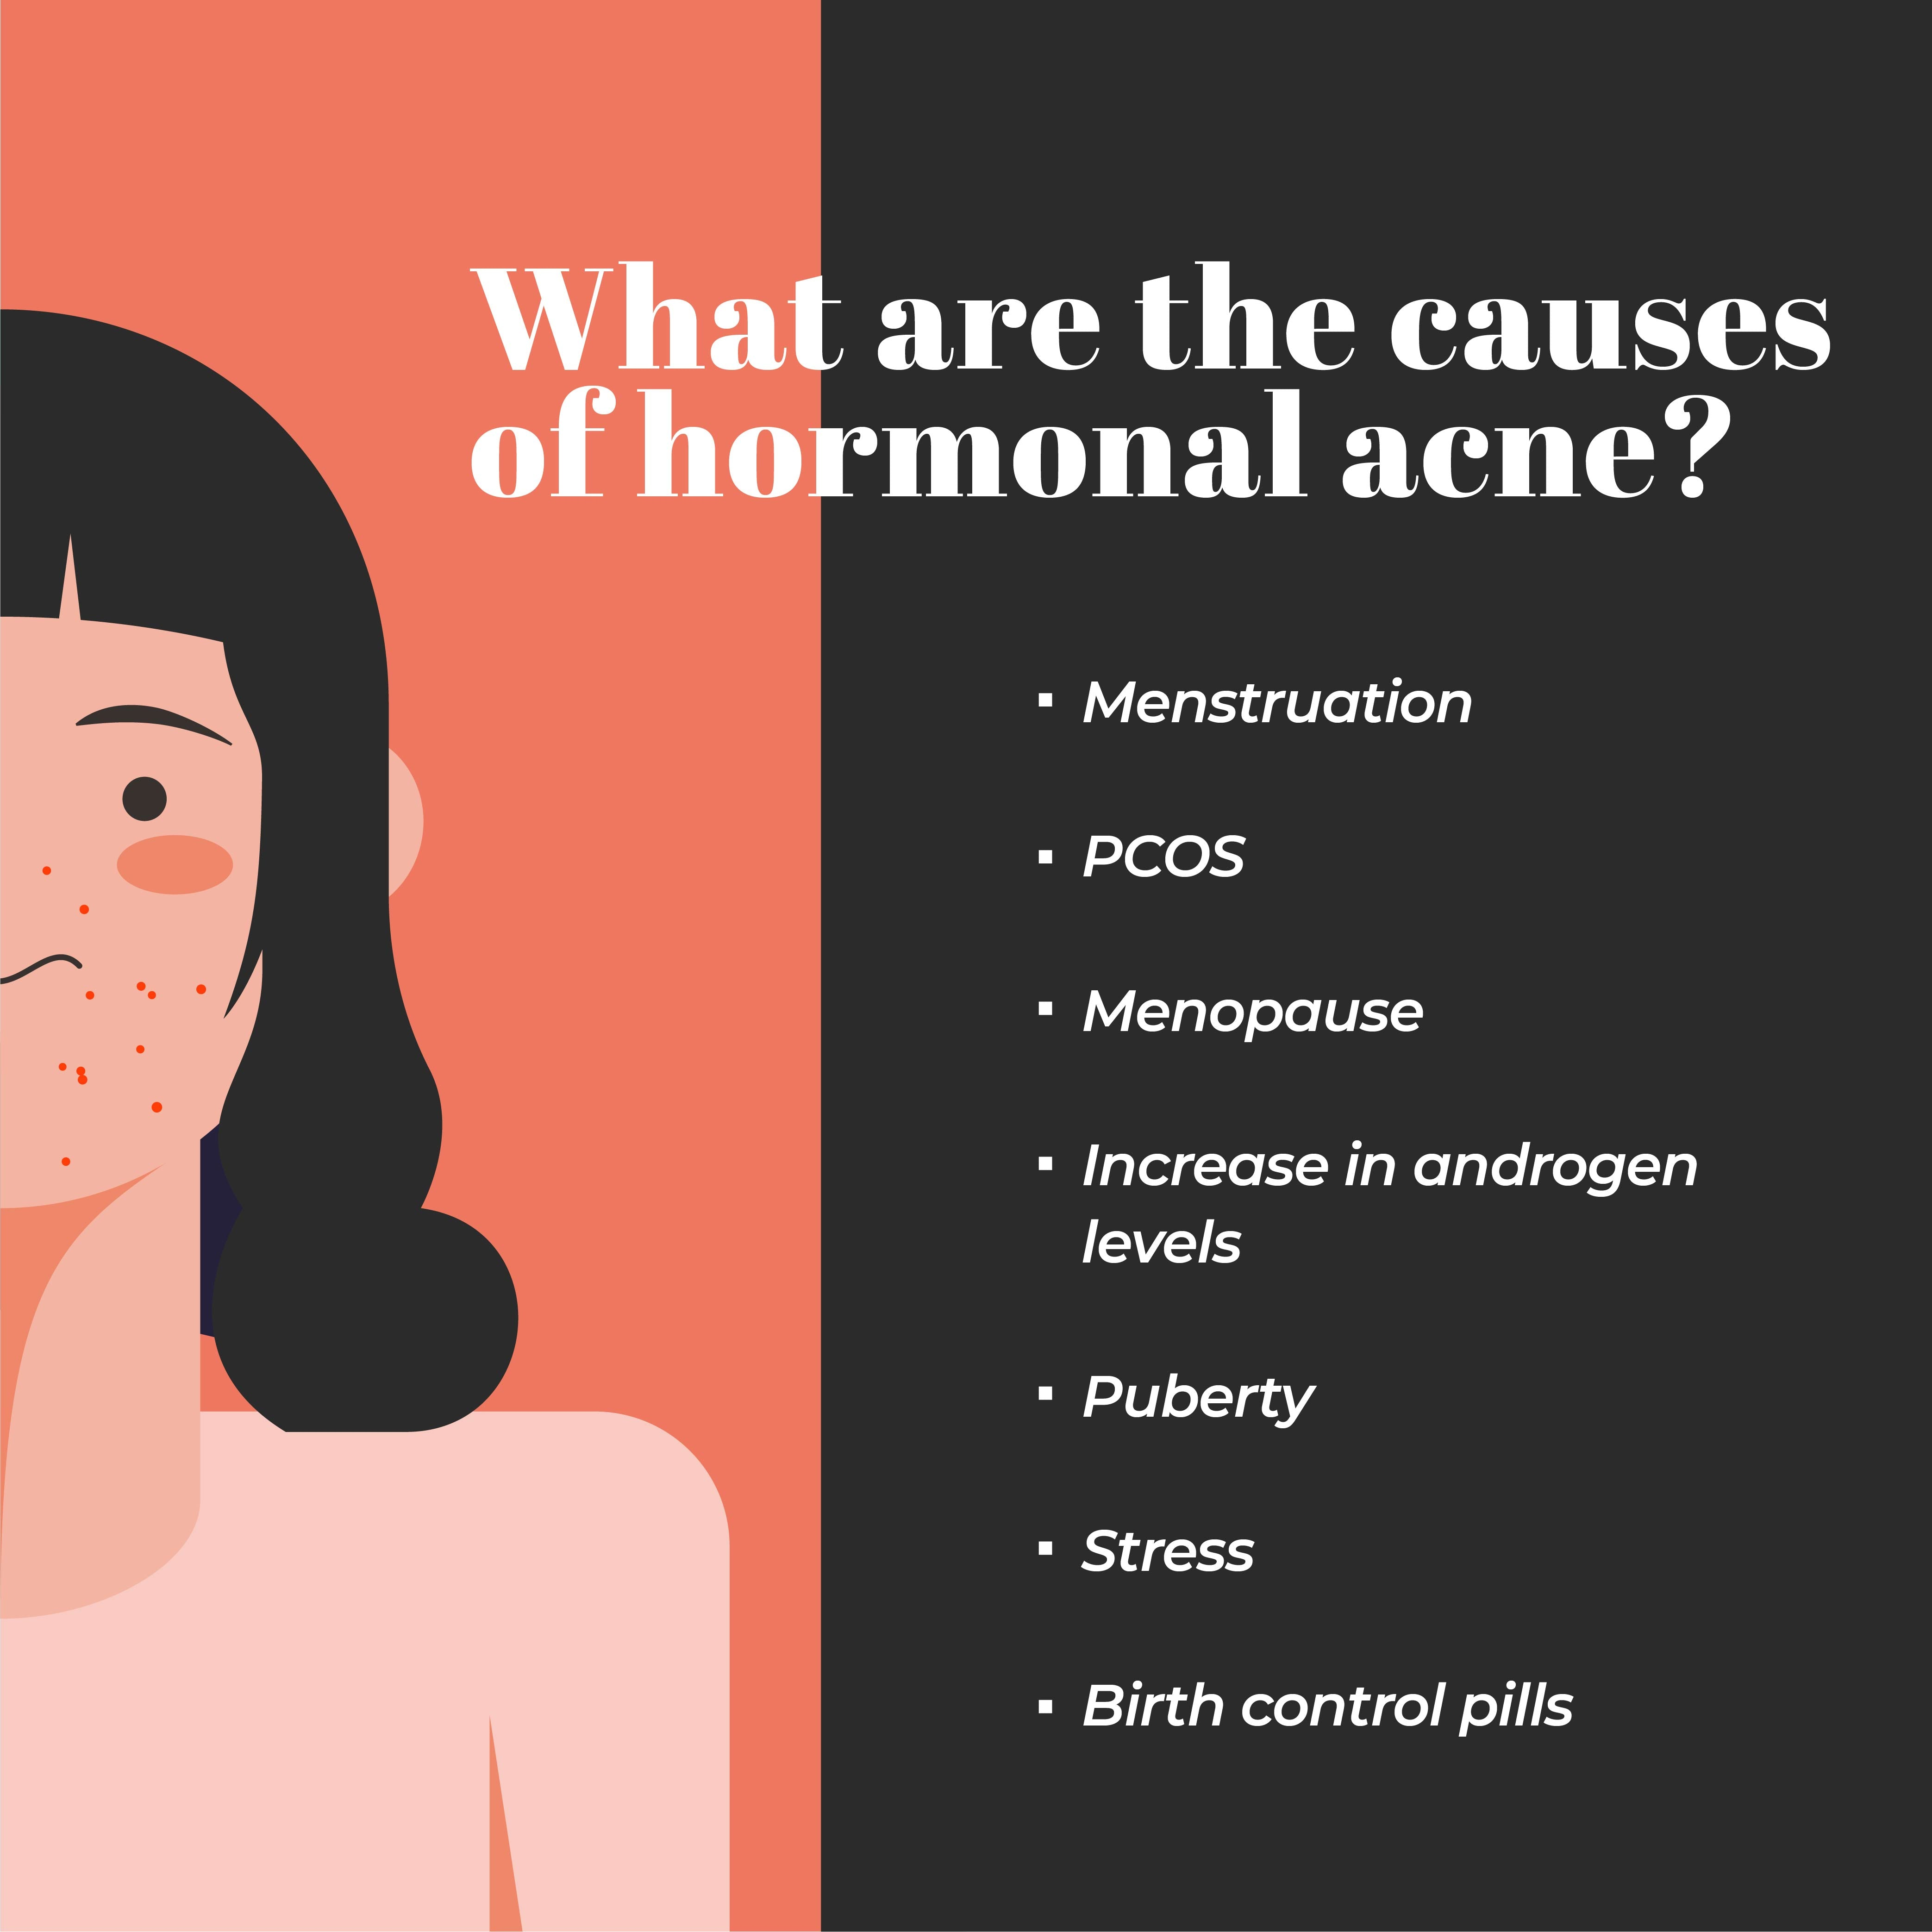 This is an image of the reasons of hormonal acne